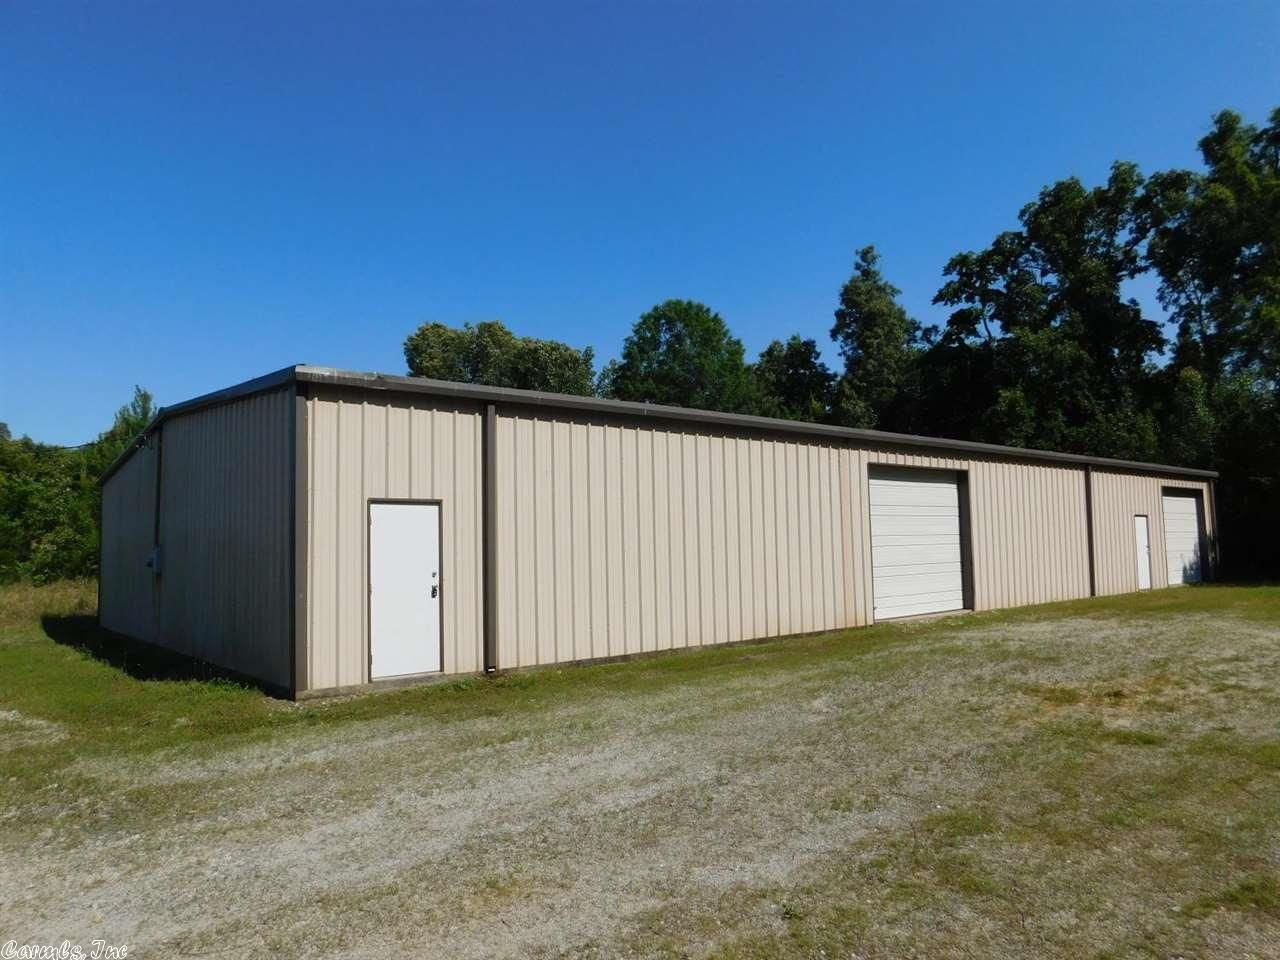 Commercial Zone C 2 Warehouse Insulated 5 000 Sq Ft With Concrete Floor 2 Entry Doors 2 12x10 Overh Concrete Floors Arkansas Real Estate Overhead Door